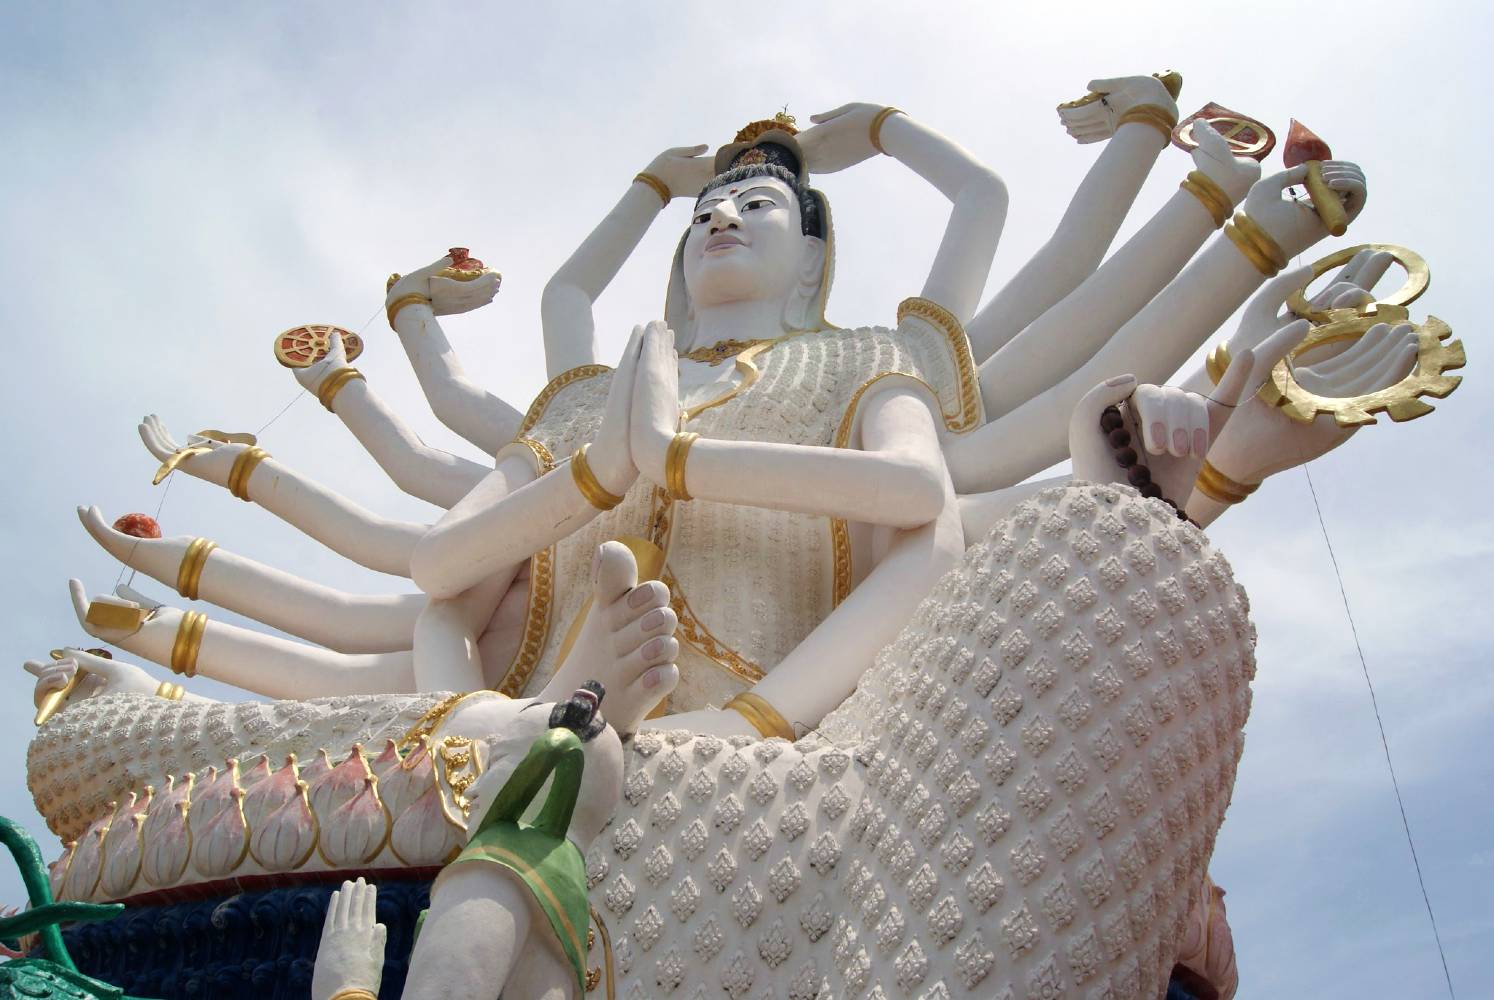 Statue of the 18-armed Goddess Guanyin at the Wat Plai Laem temple complex on Koh Samui